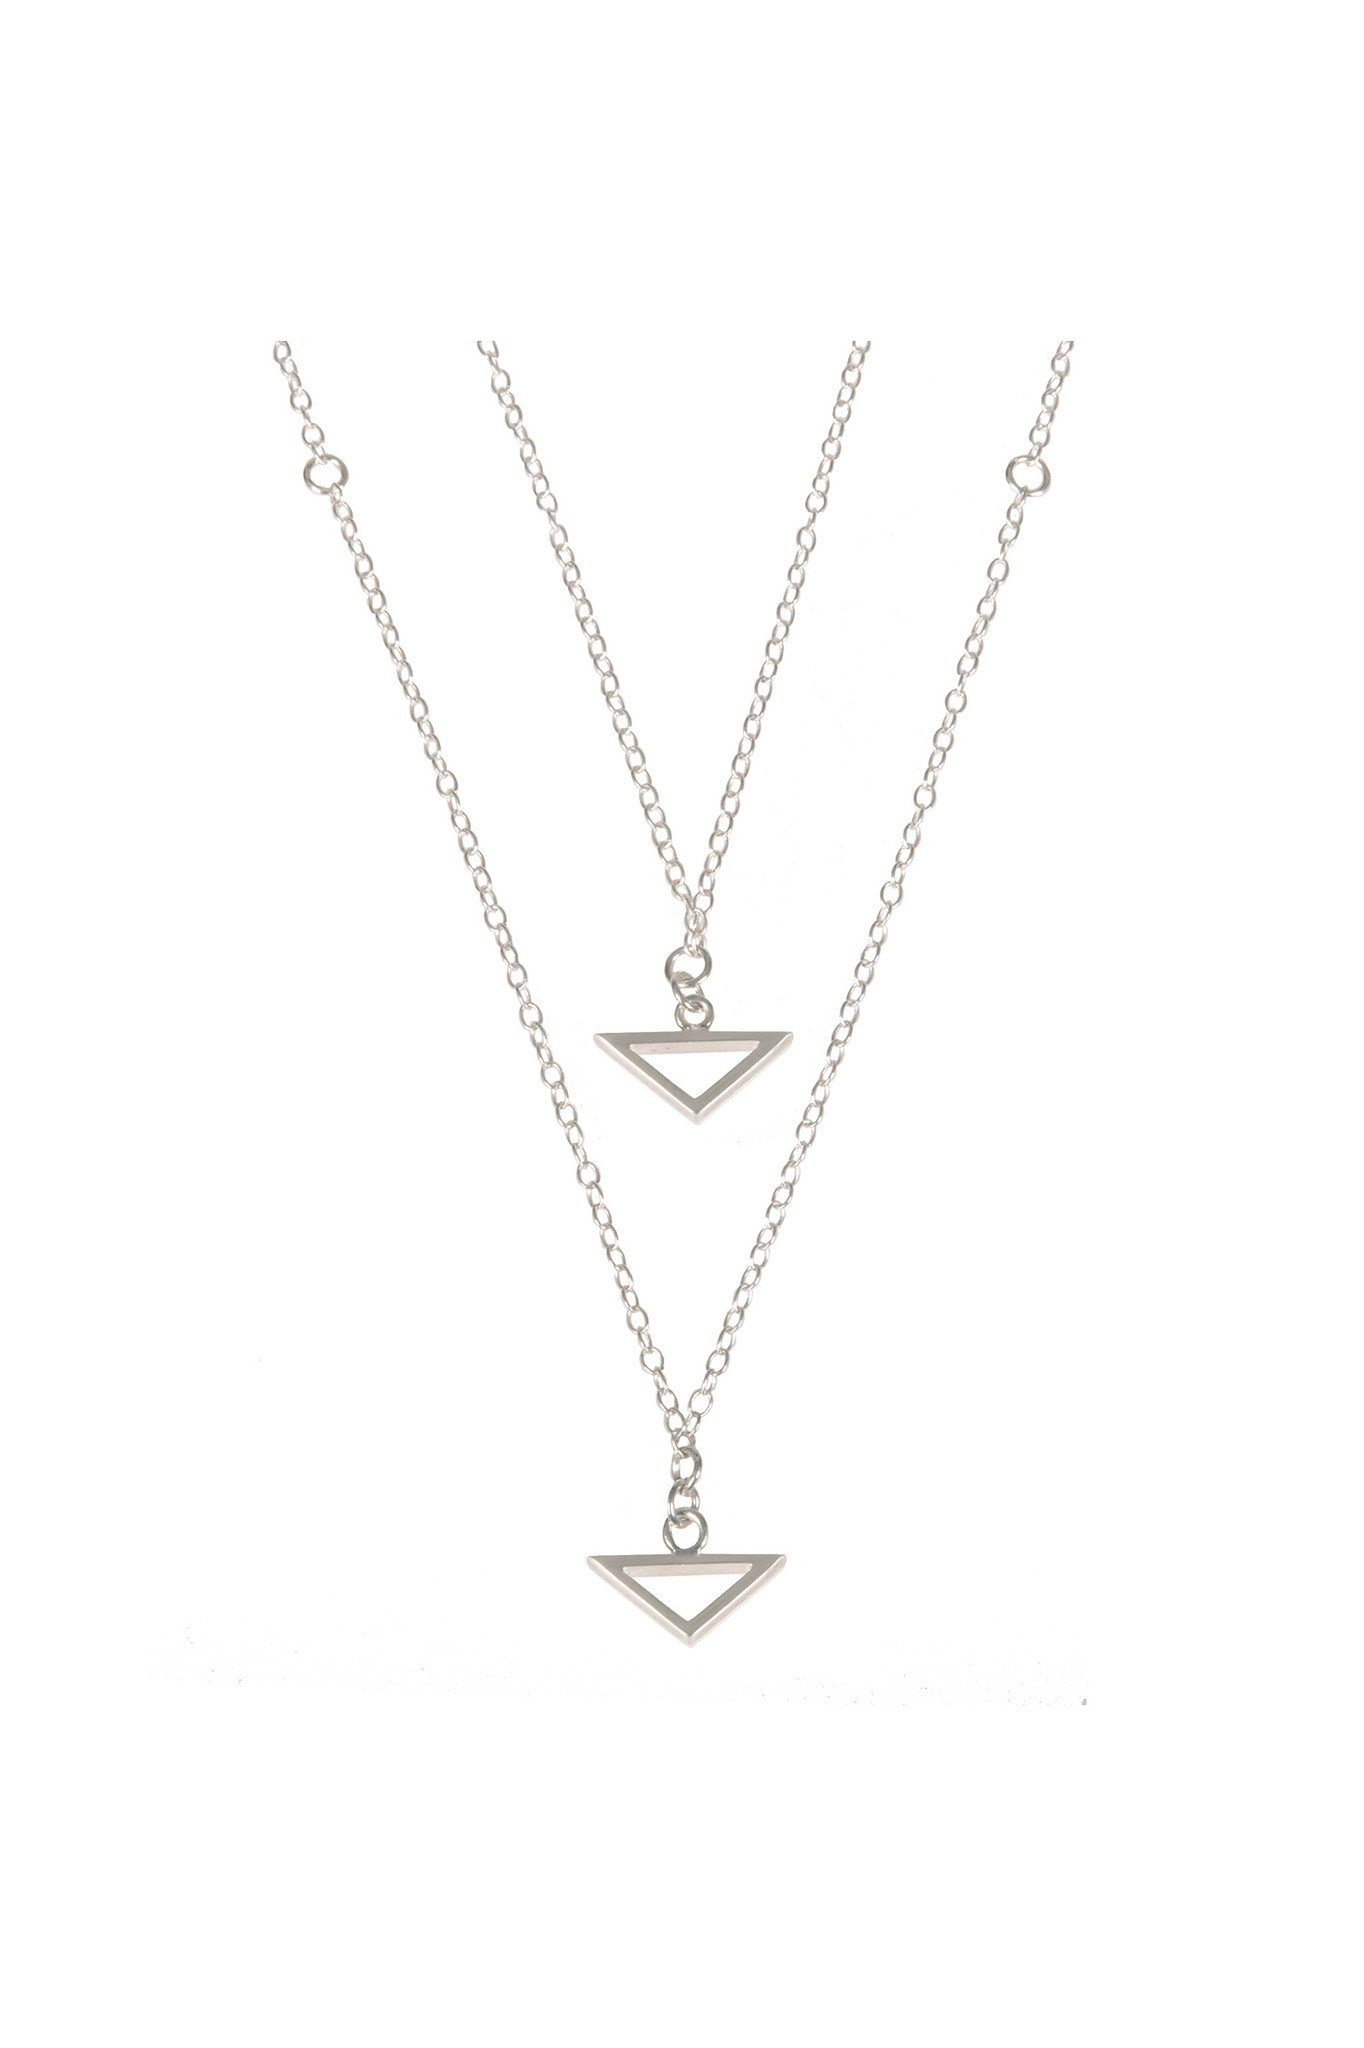 Double Trouble, Silver Necklace by Sally Lane Jewellery on curated-crowd.com